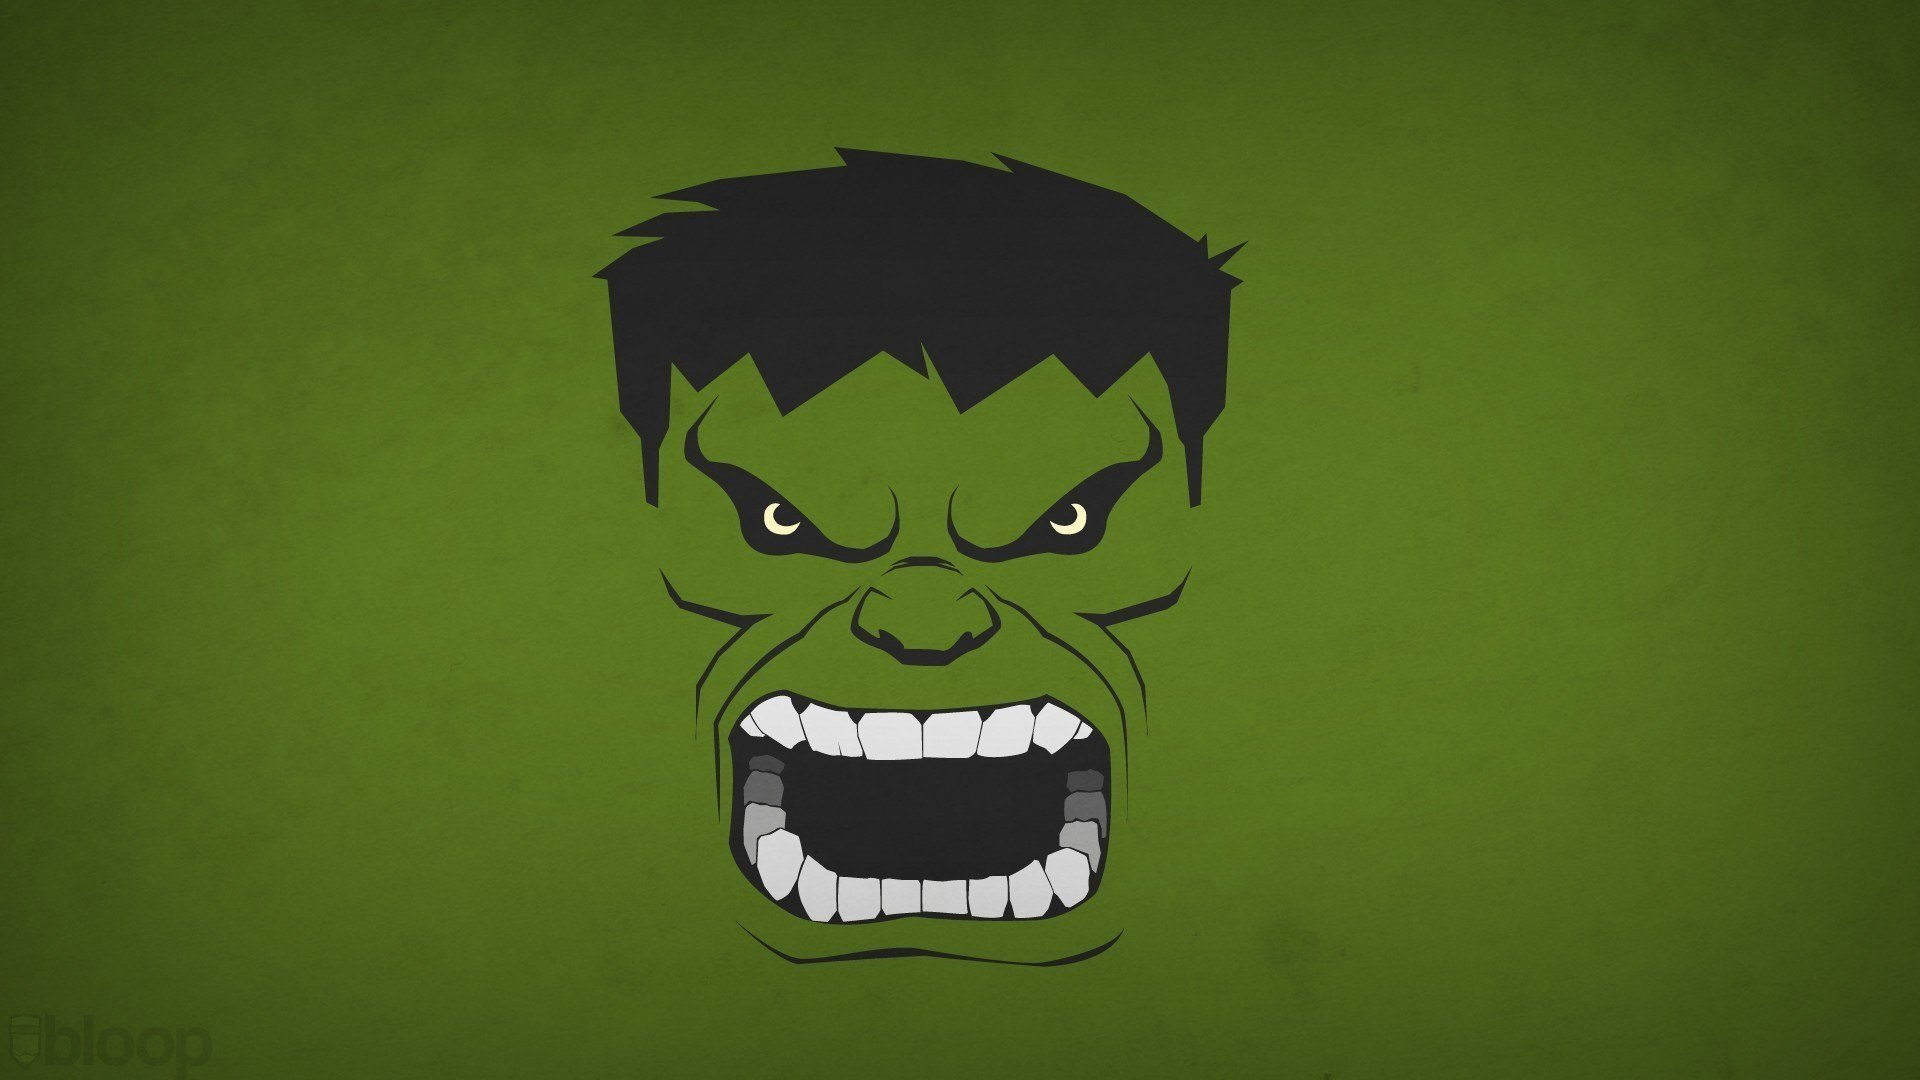 Hulk Wallpapers 4k For Your Phone And Desktop Screen